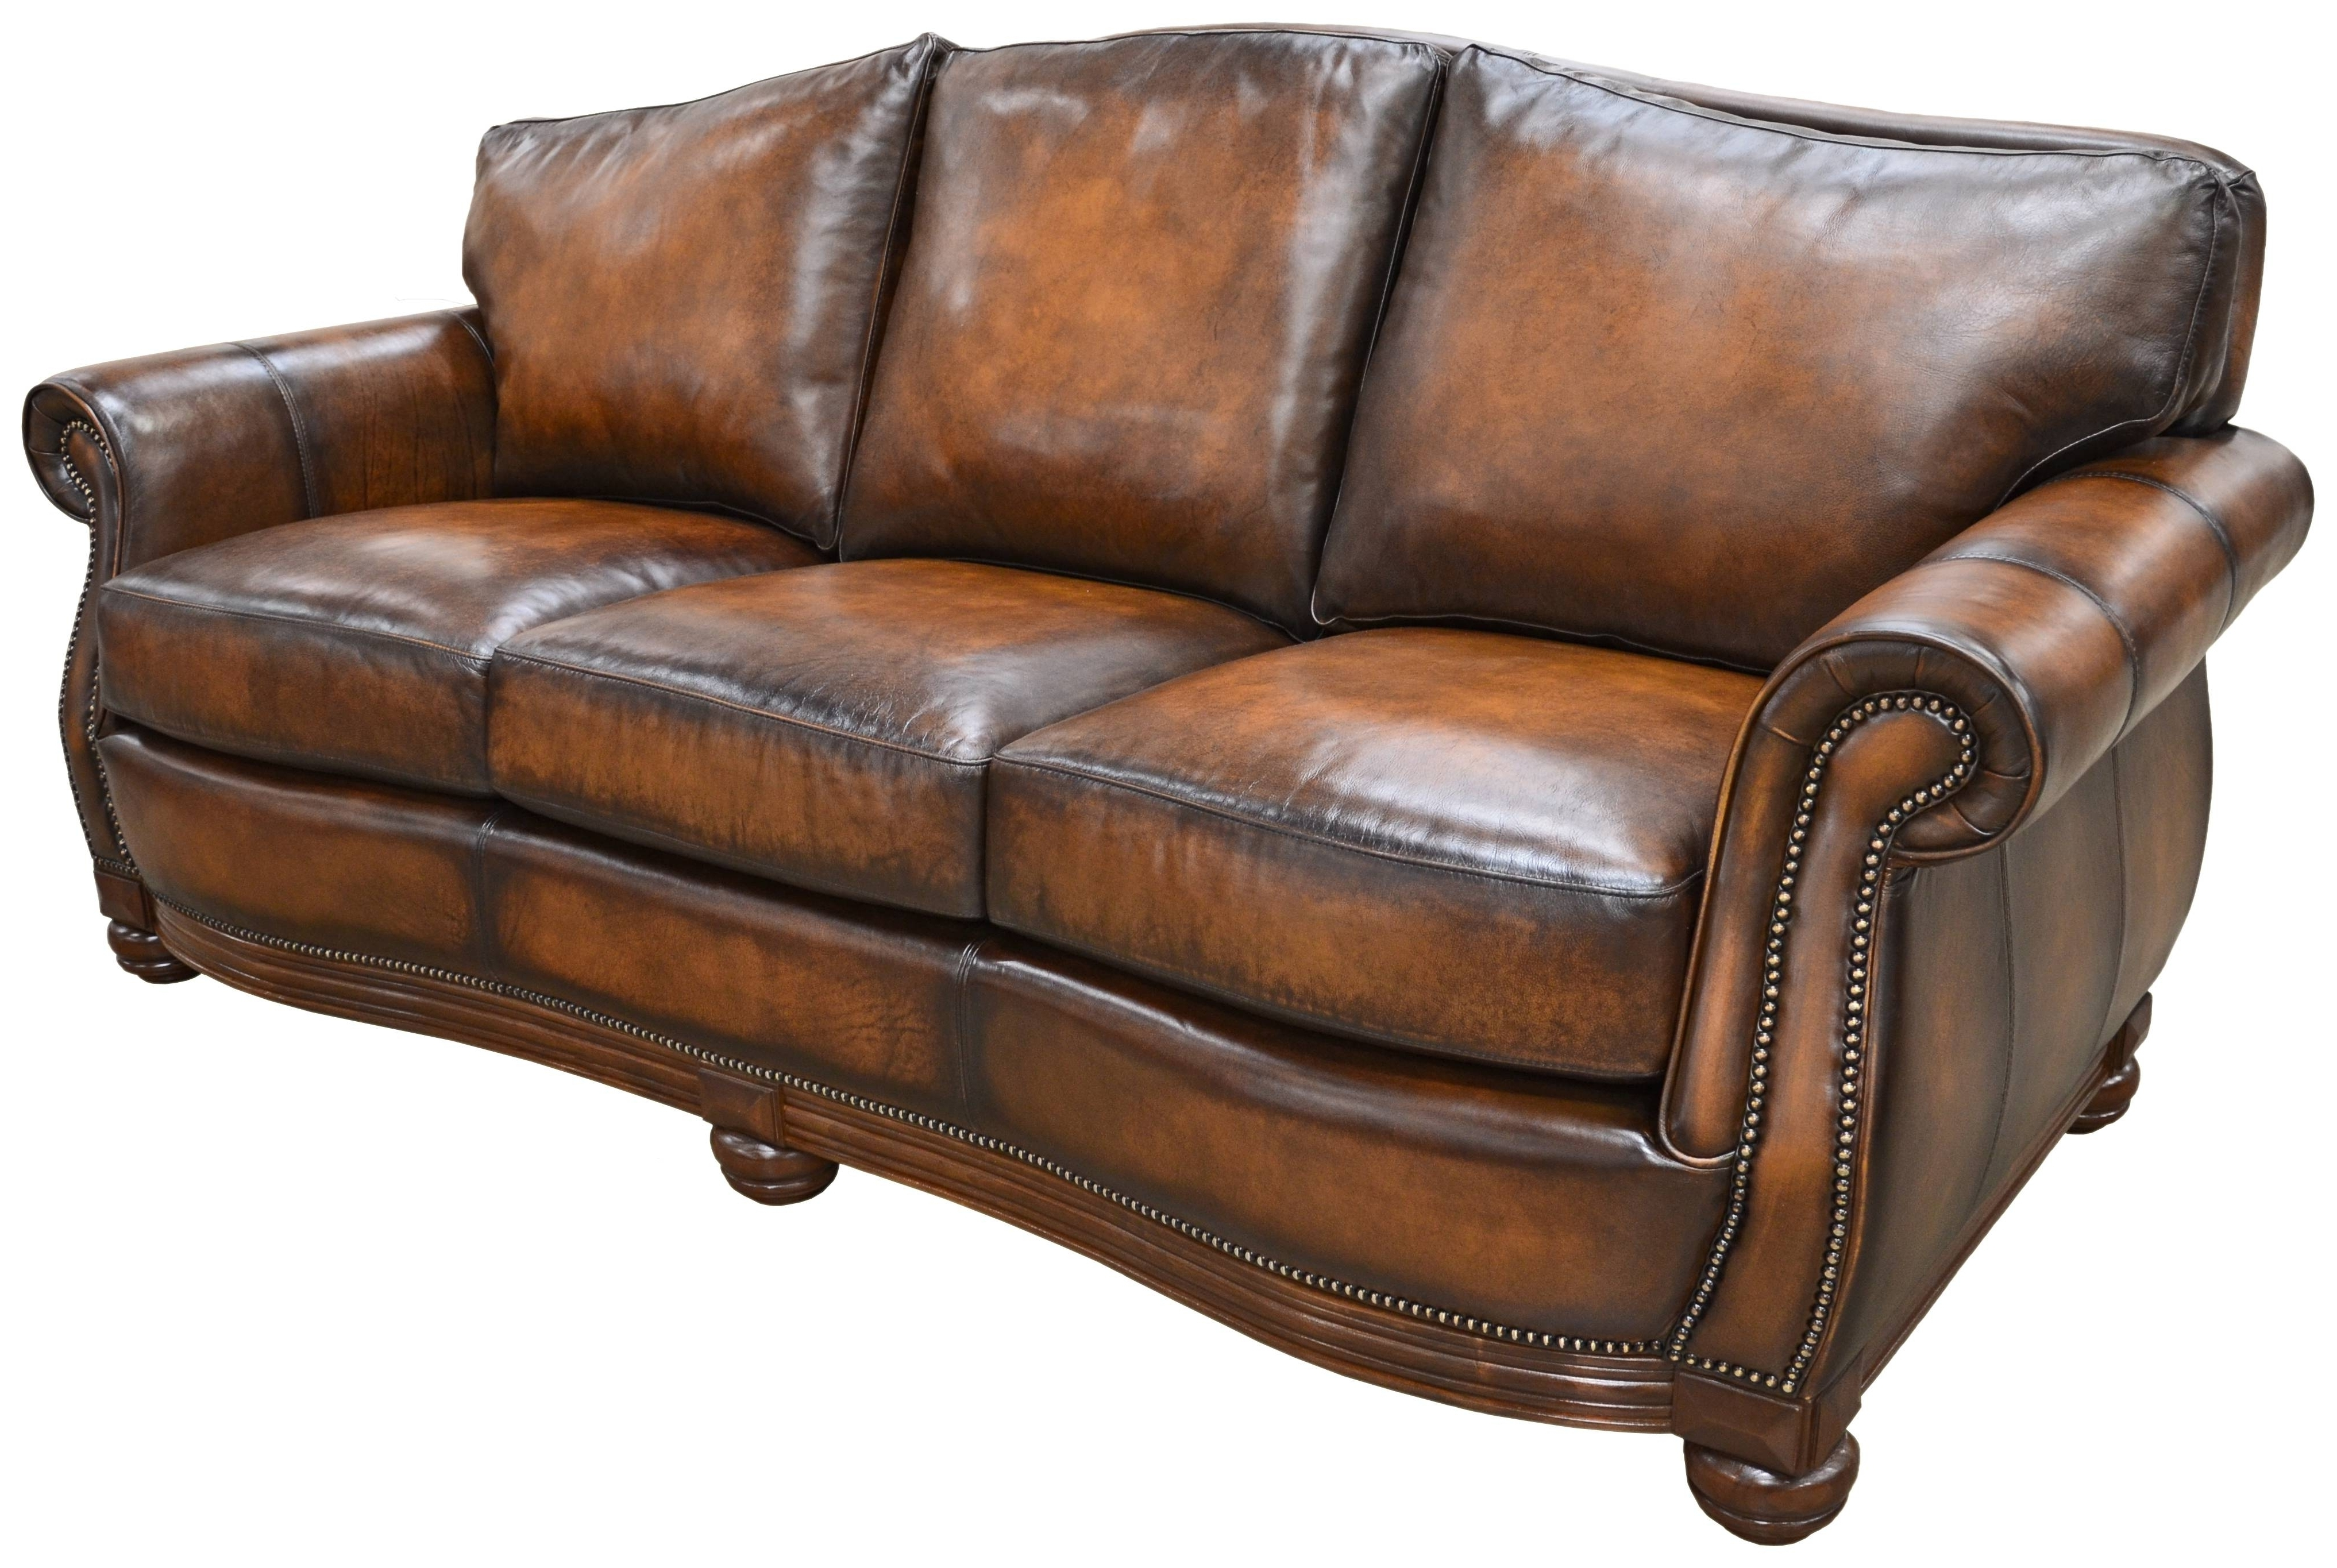 Most Recently Released Aniline Leather Sofa Degreaser • Leather Sofa Throughout Aniline Leather Sofas (View 15 of 15)